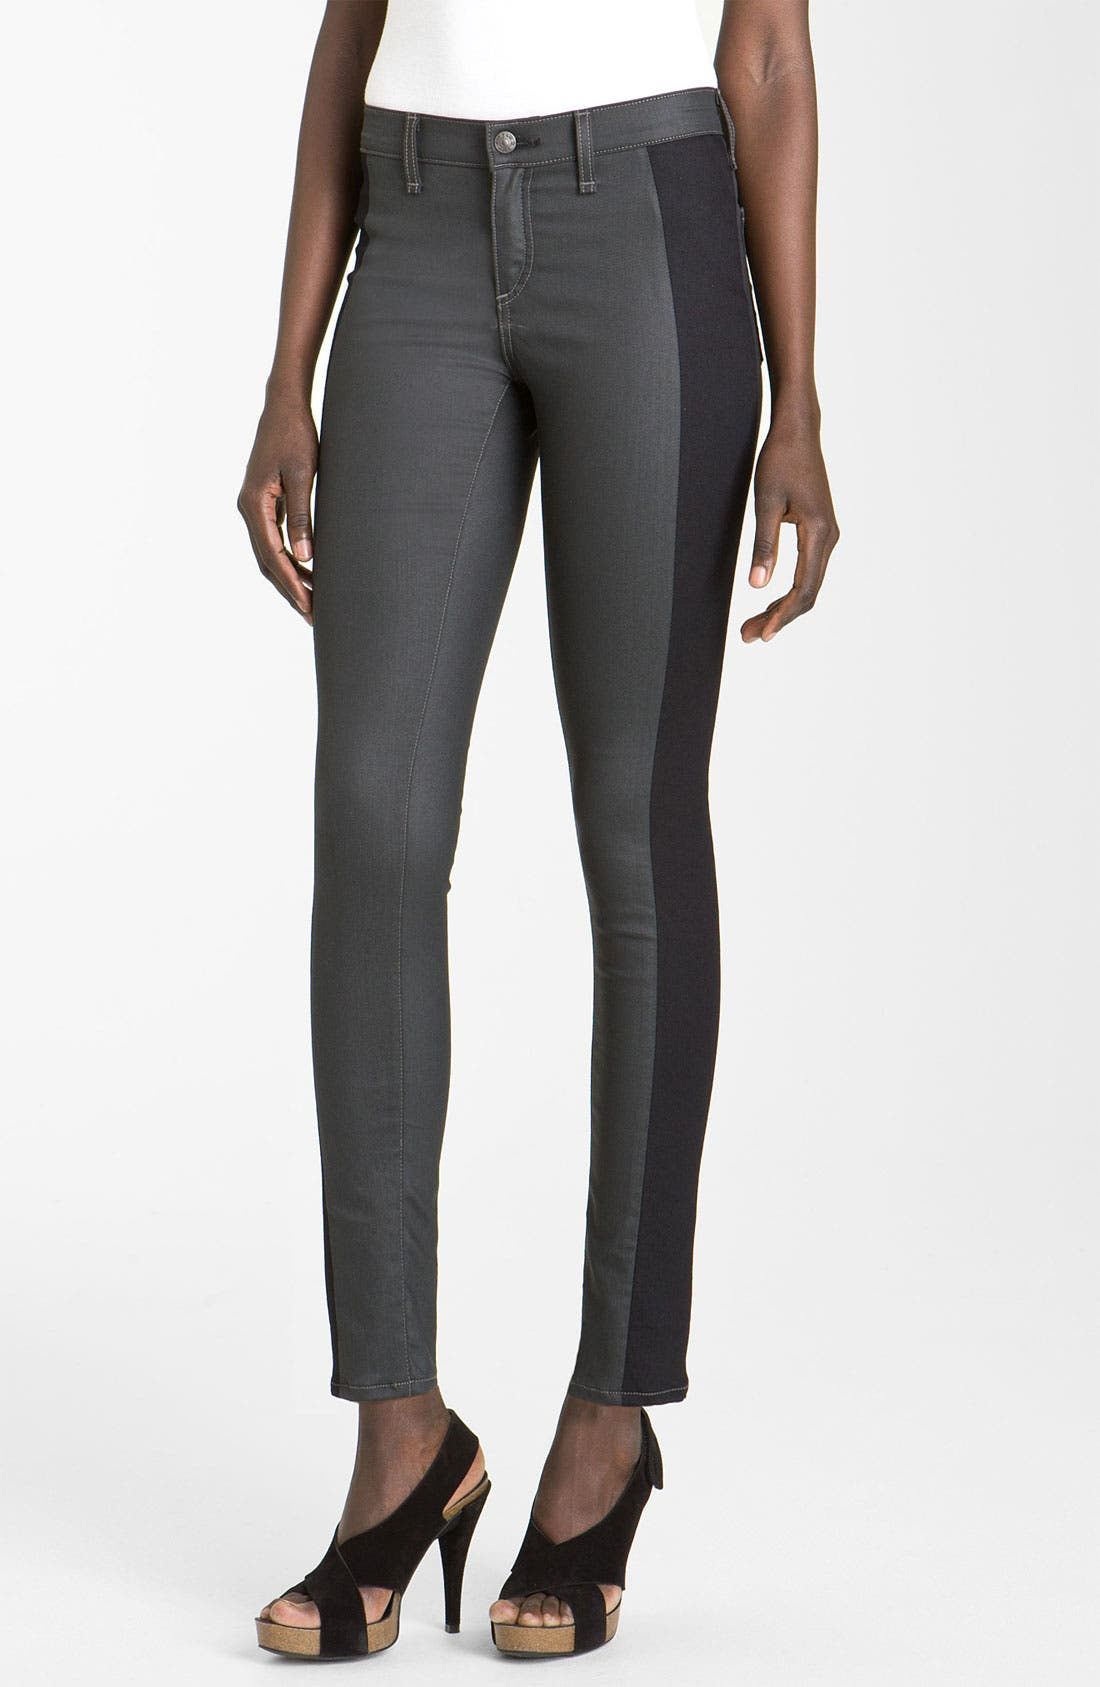 Alternate Image 1 Selected - rag & bone/JEAN Slim Tuxedo Stripe Jeans